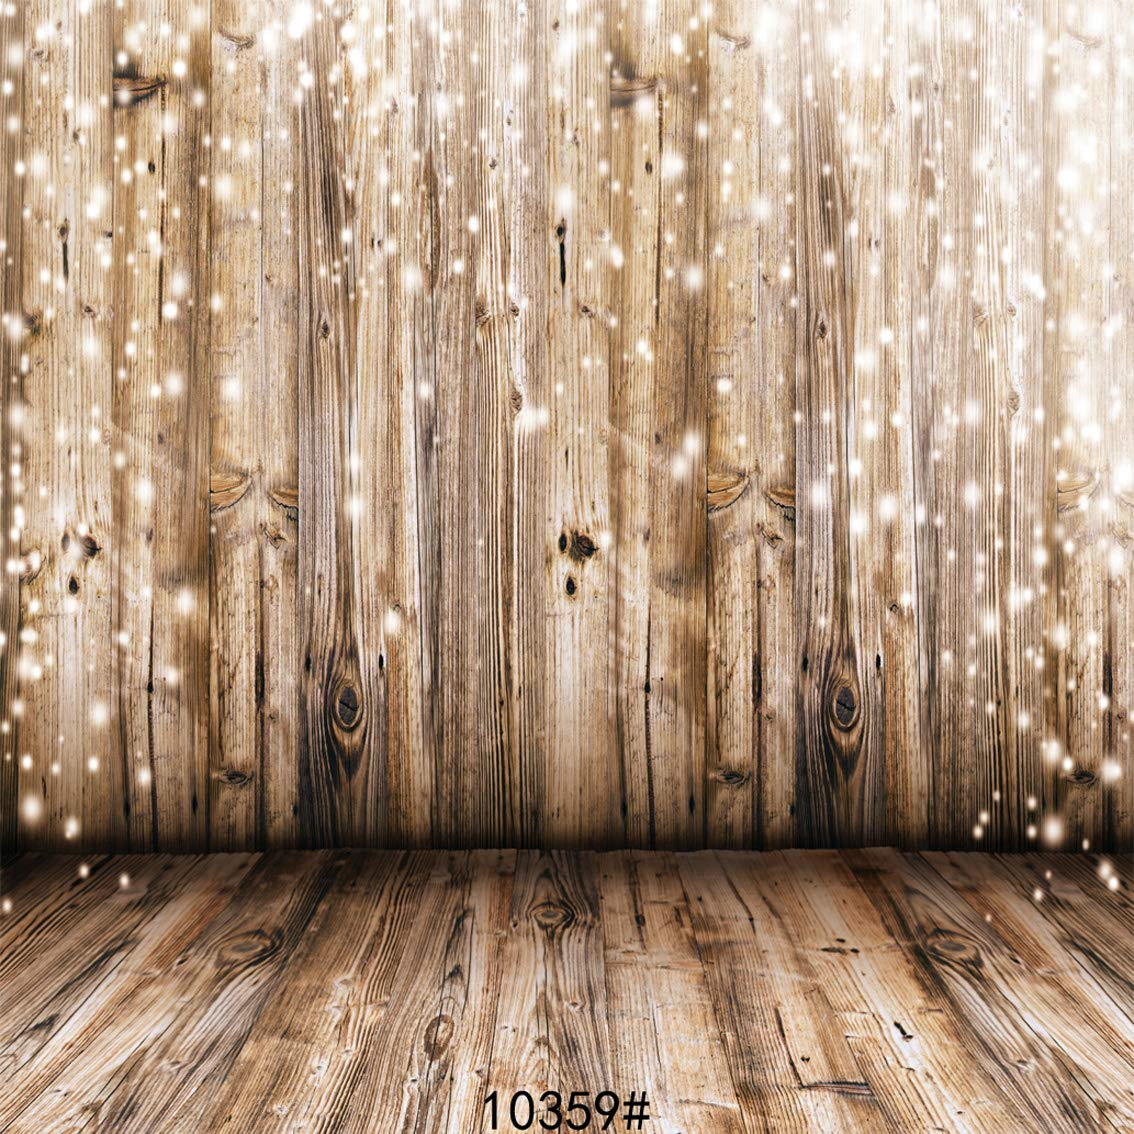 SJOLOON 10x10ft Rustic Backdrop Vinyl Photographer Background Wedding Wood Photography Backdrops for Photographers Studio Props 10359 by SJOLOON (Image #1)